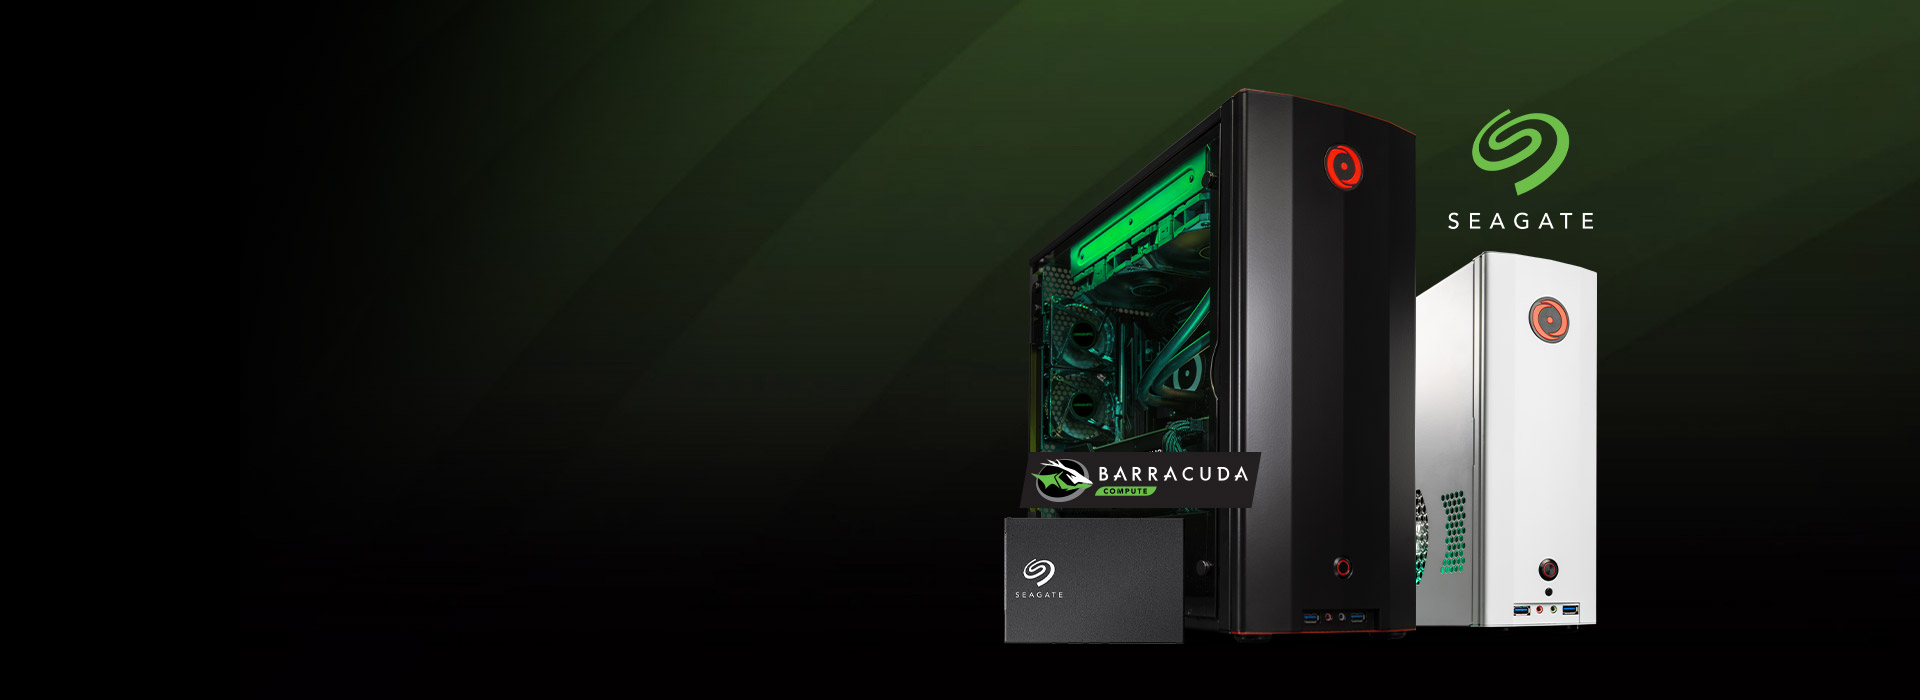 Save $100 On an ORIGIN PC with a Seagate BarraCuda SSD!